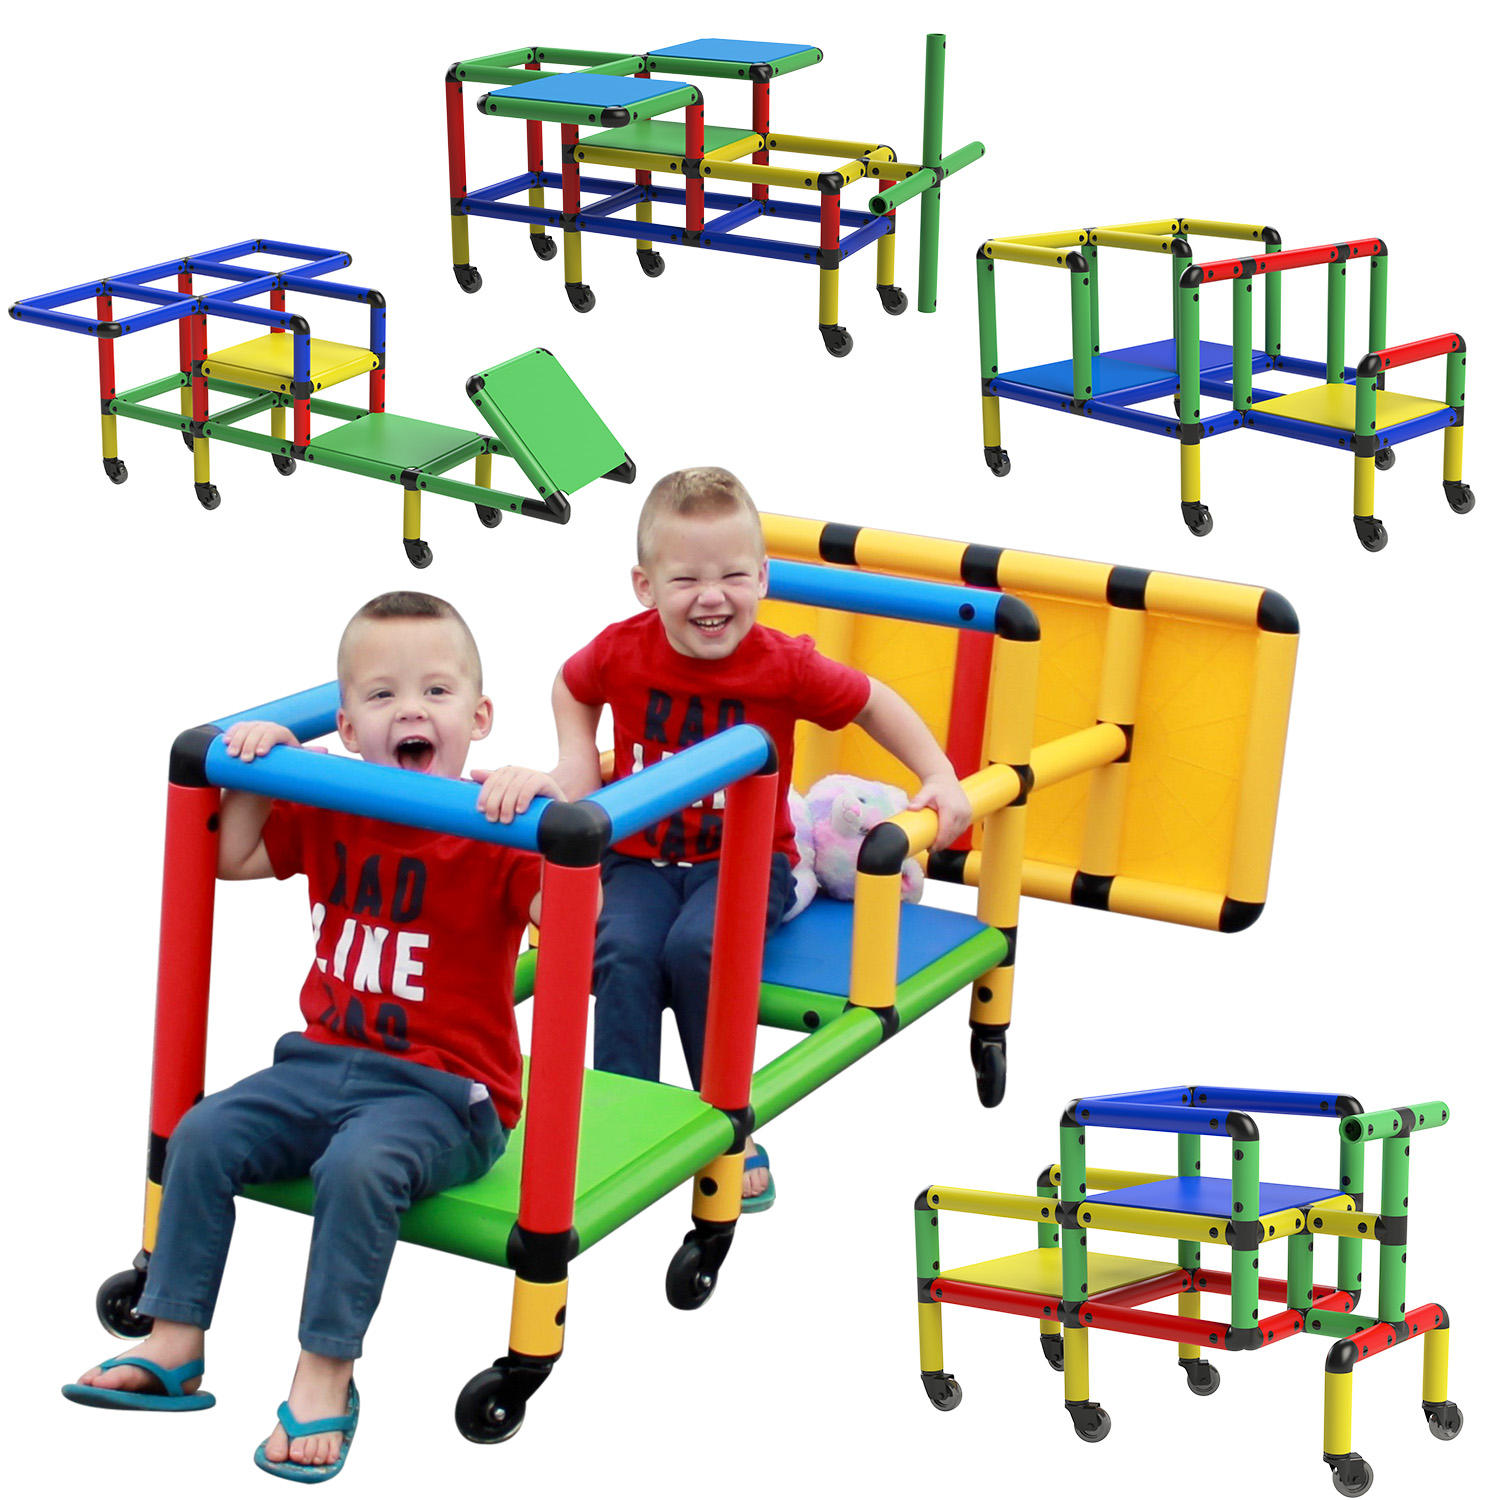 Funphix Wheelies Create and Play Life Size Structures